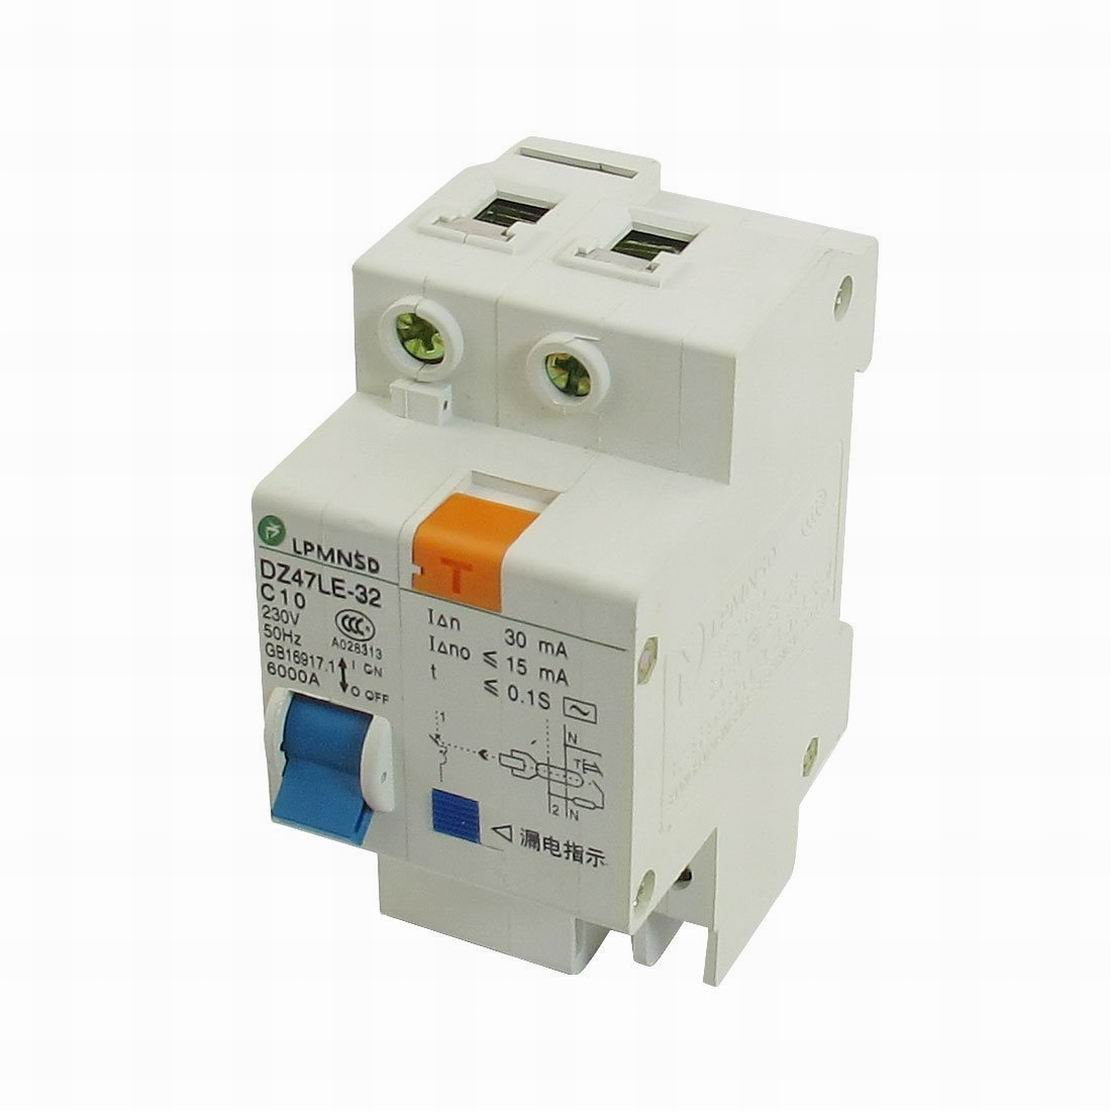 FemiaD DIN Dail 1P Overload Proetction Circuit Breaker 230VAC 10A 6000A